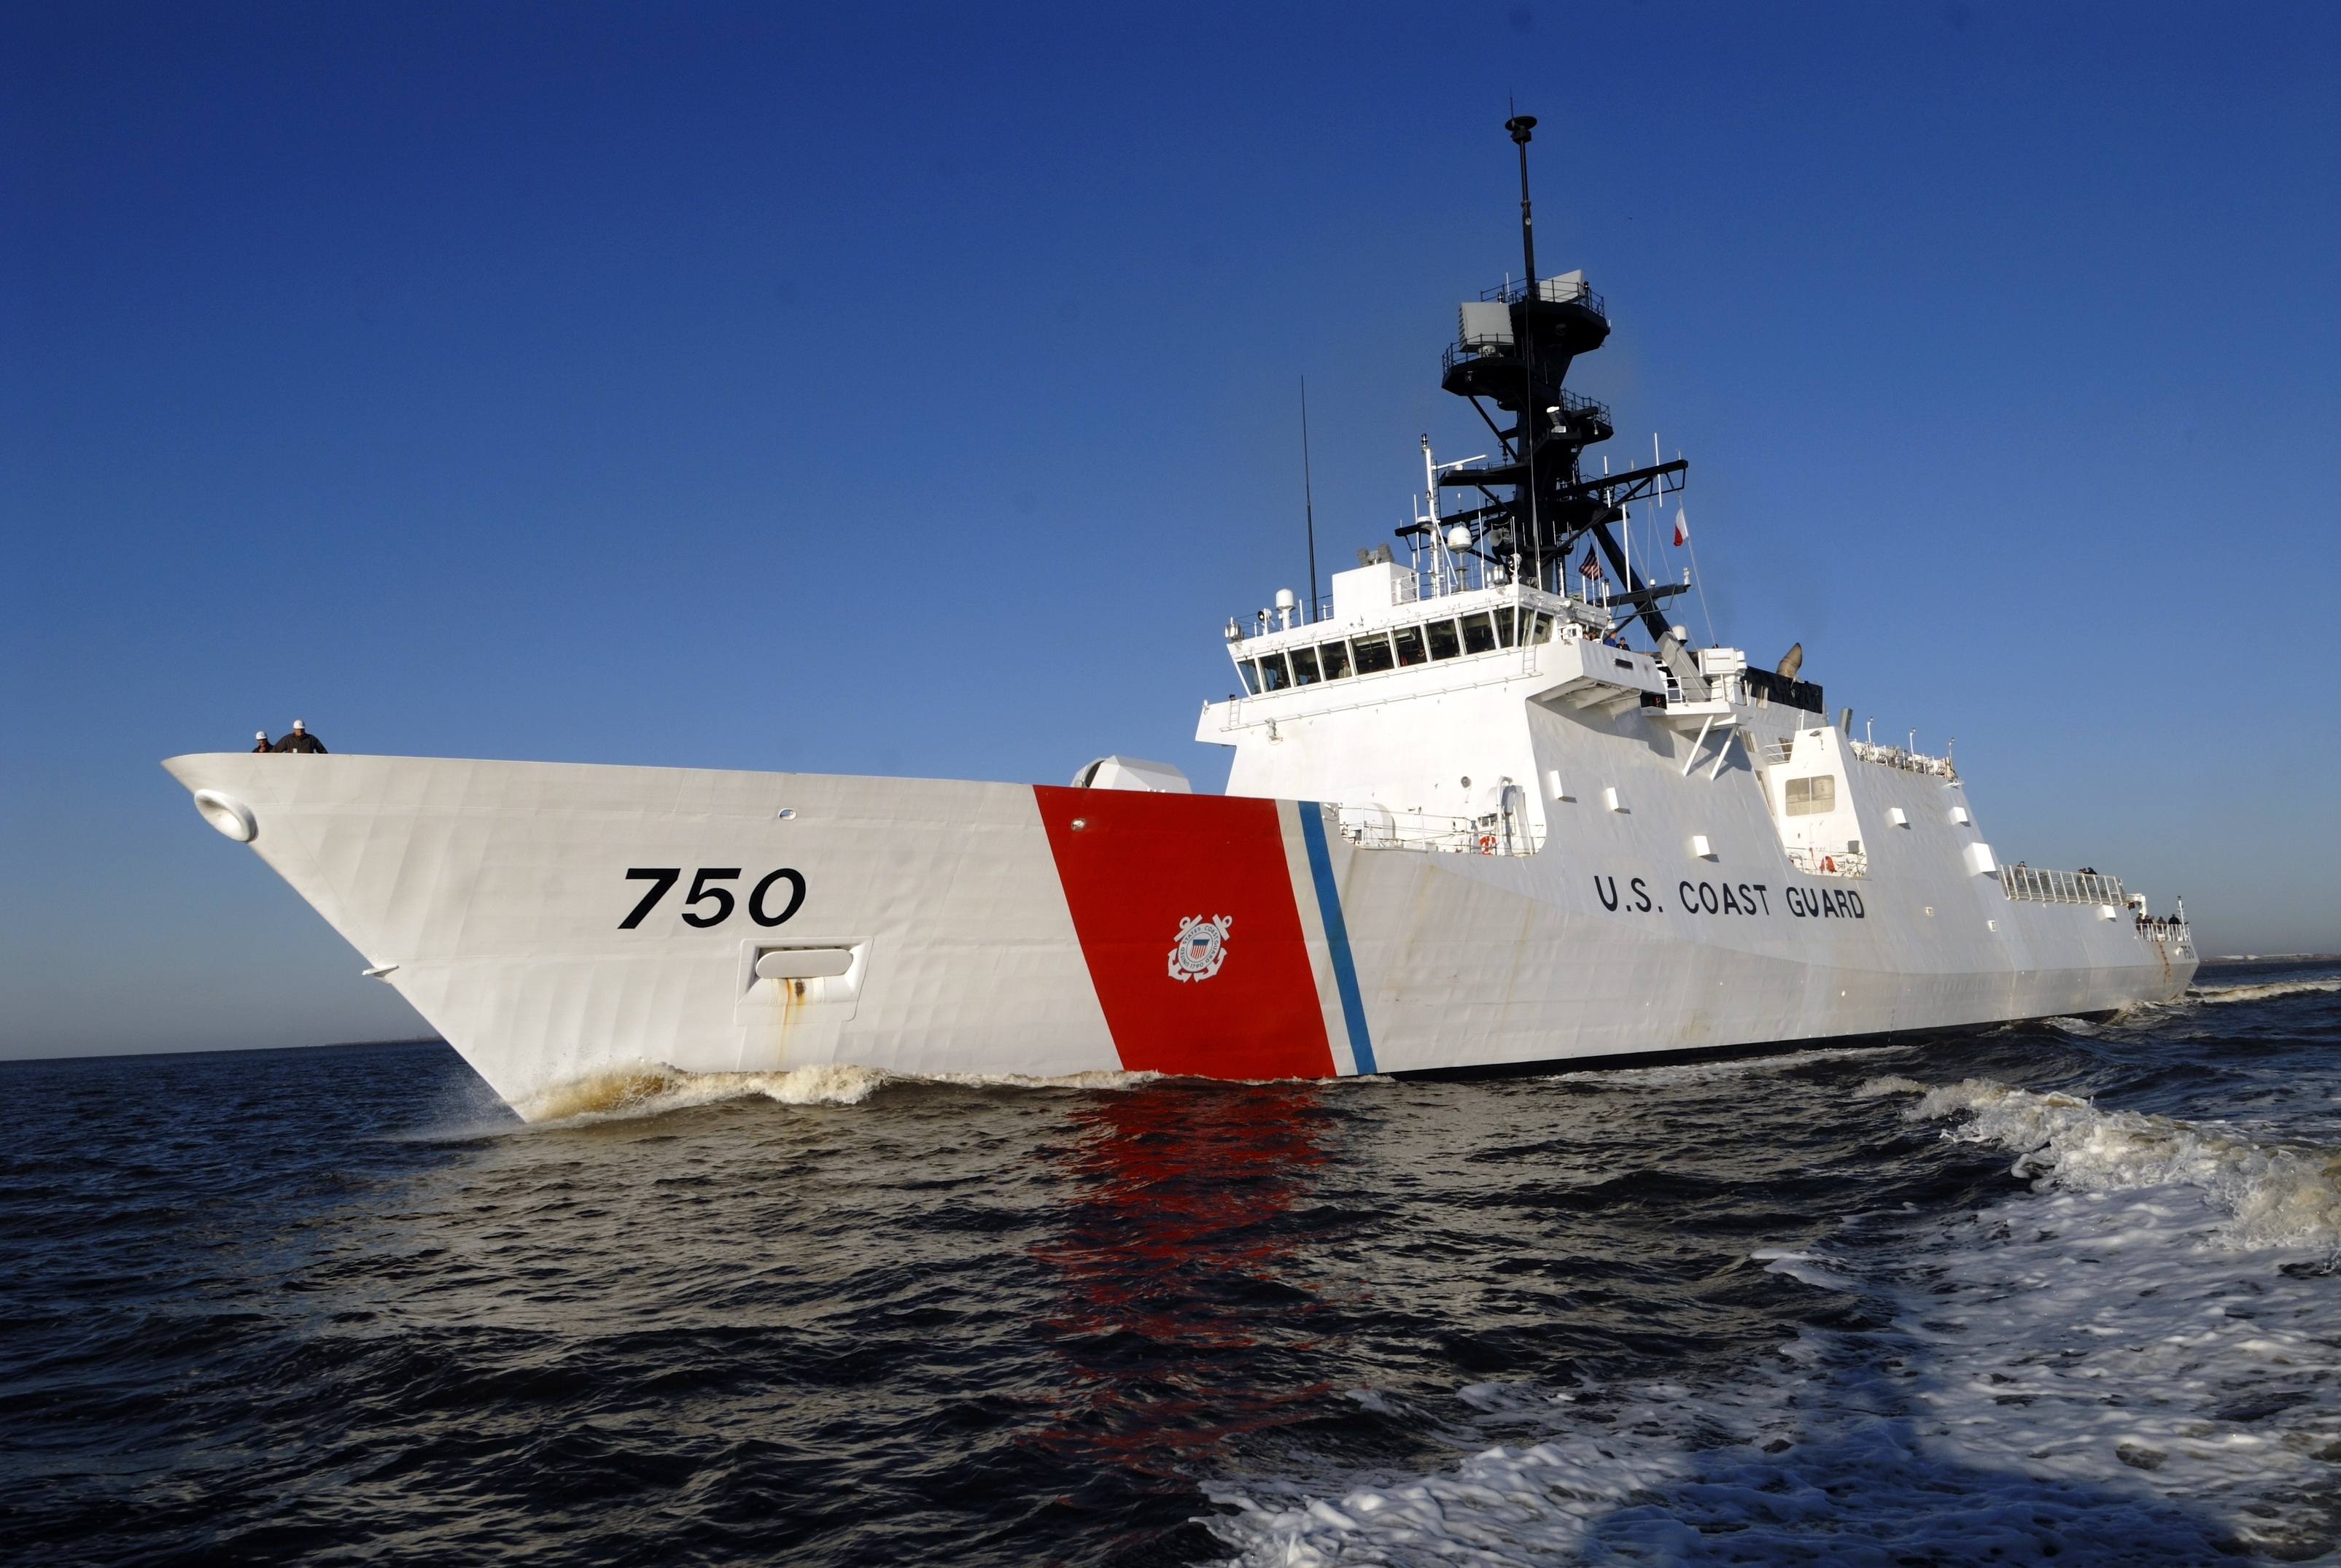 us coast guard full hd wallpaper and background image | 3210x2150